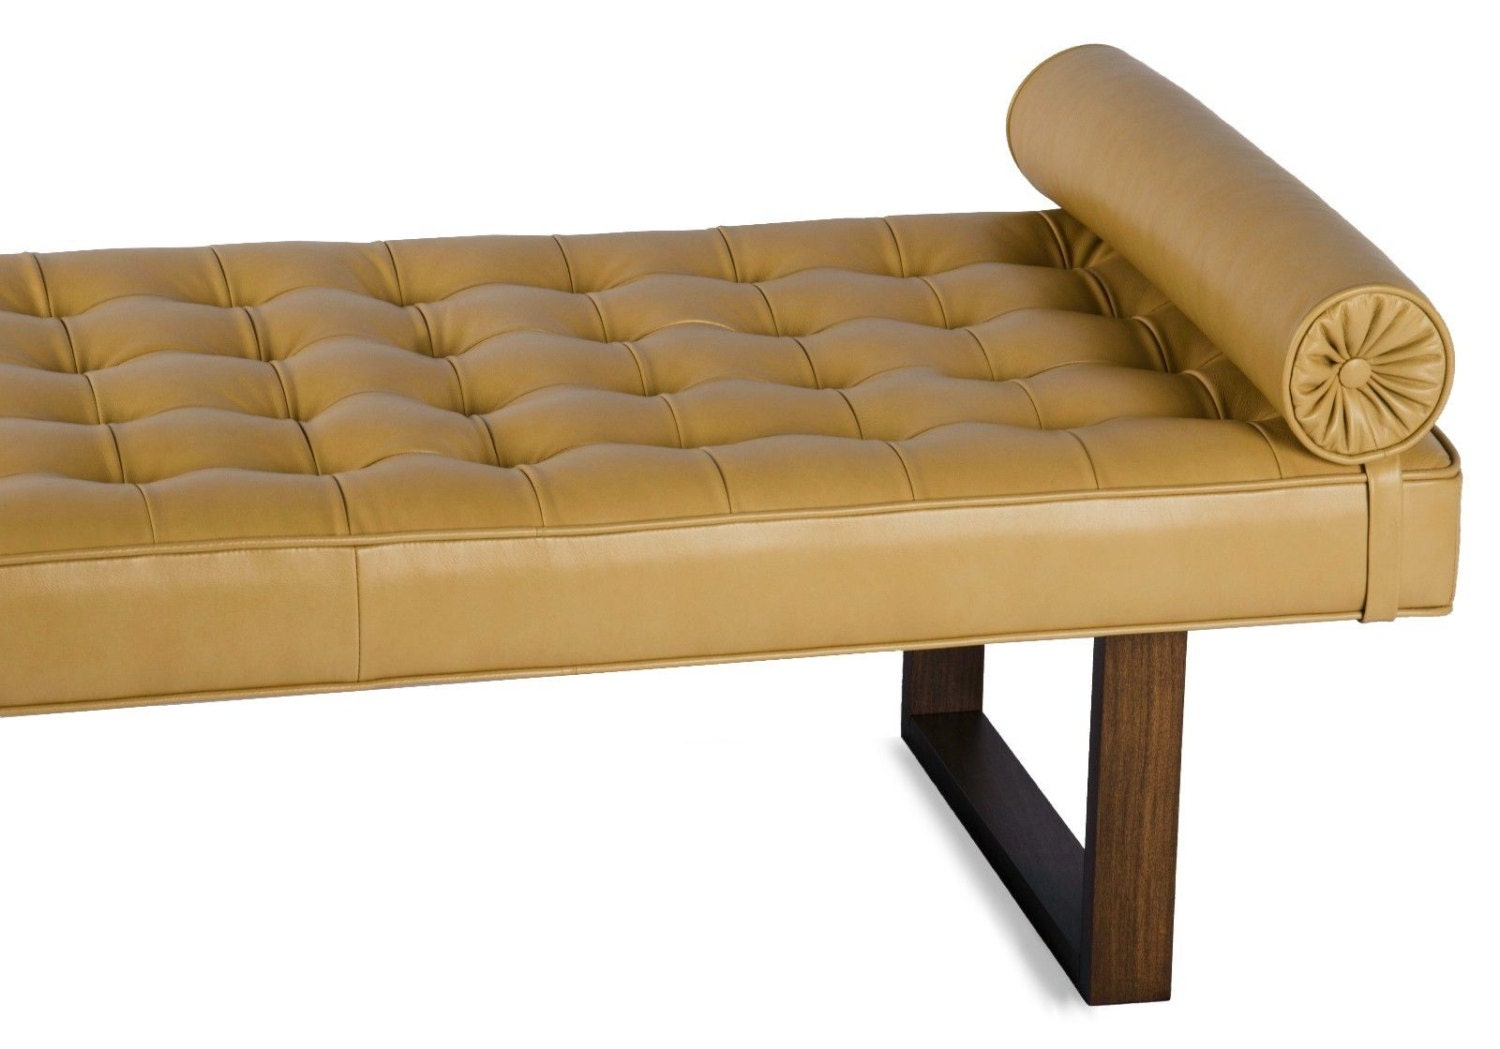 Retro modern tufted leather daybed lounge chaise bench for Daybed bench chaise